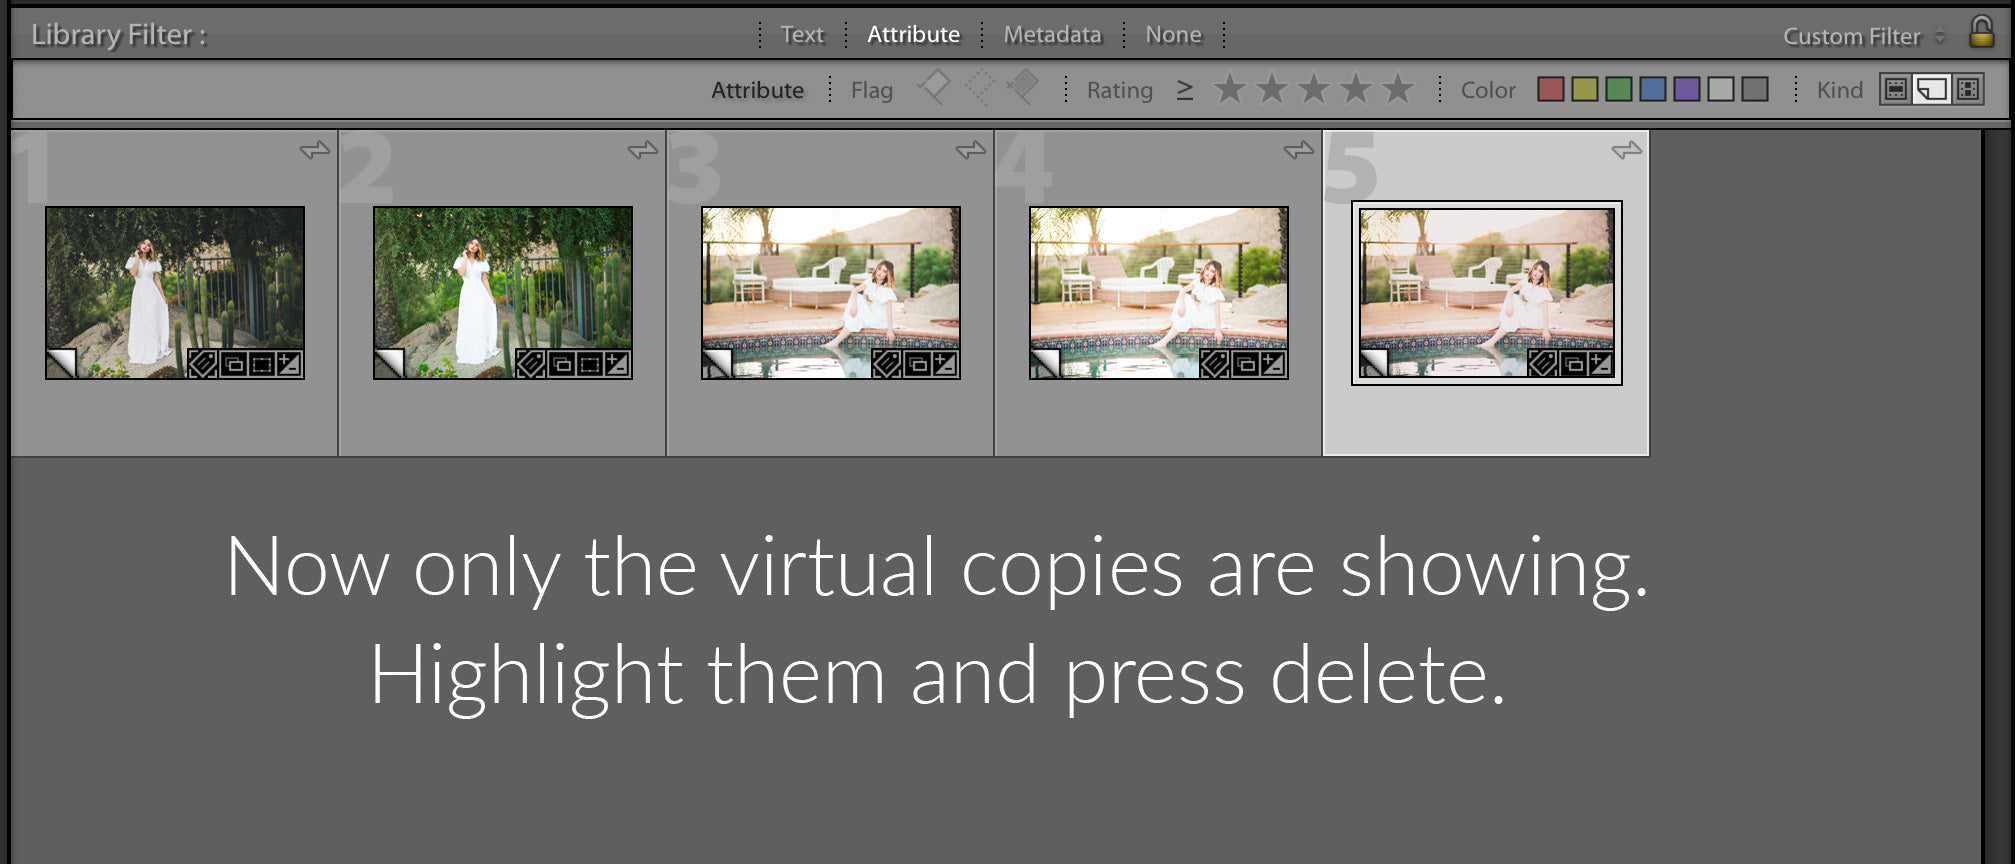 How to Delete Virtural Copies in Lightroom